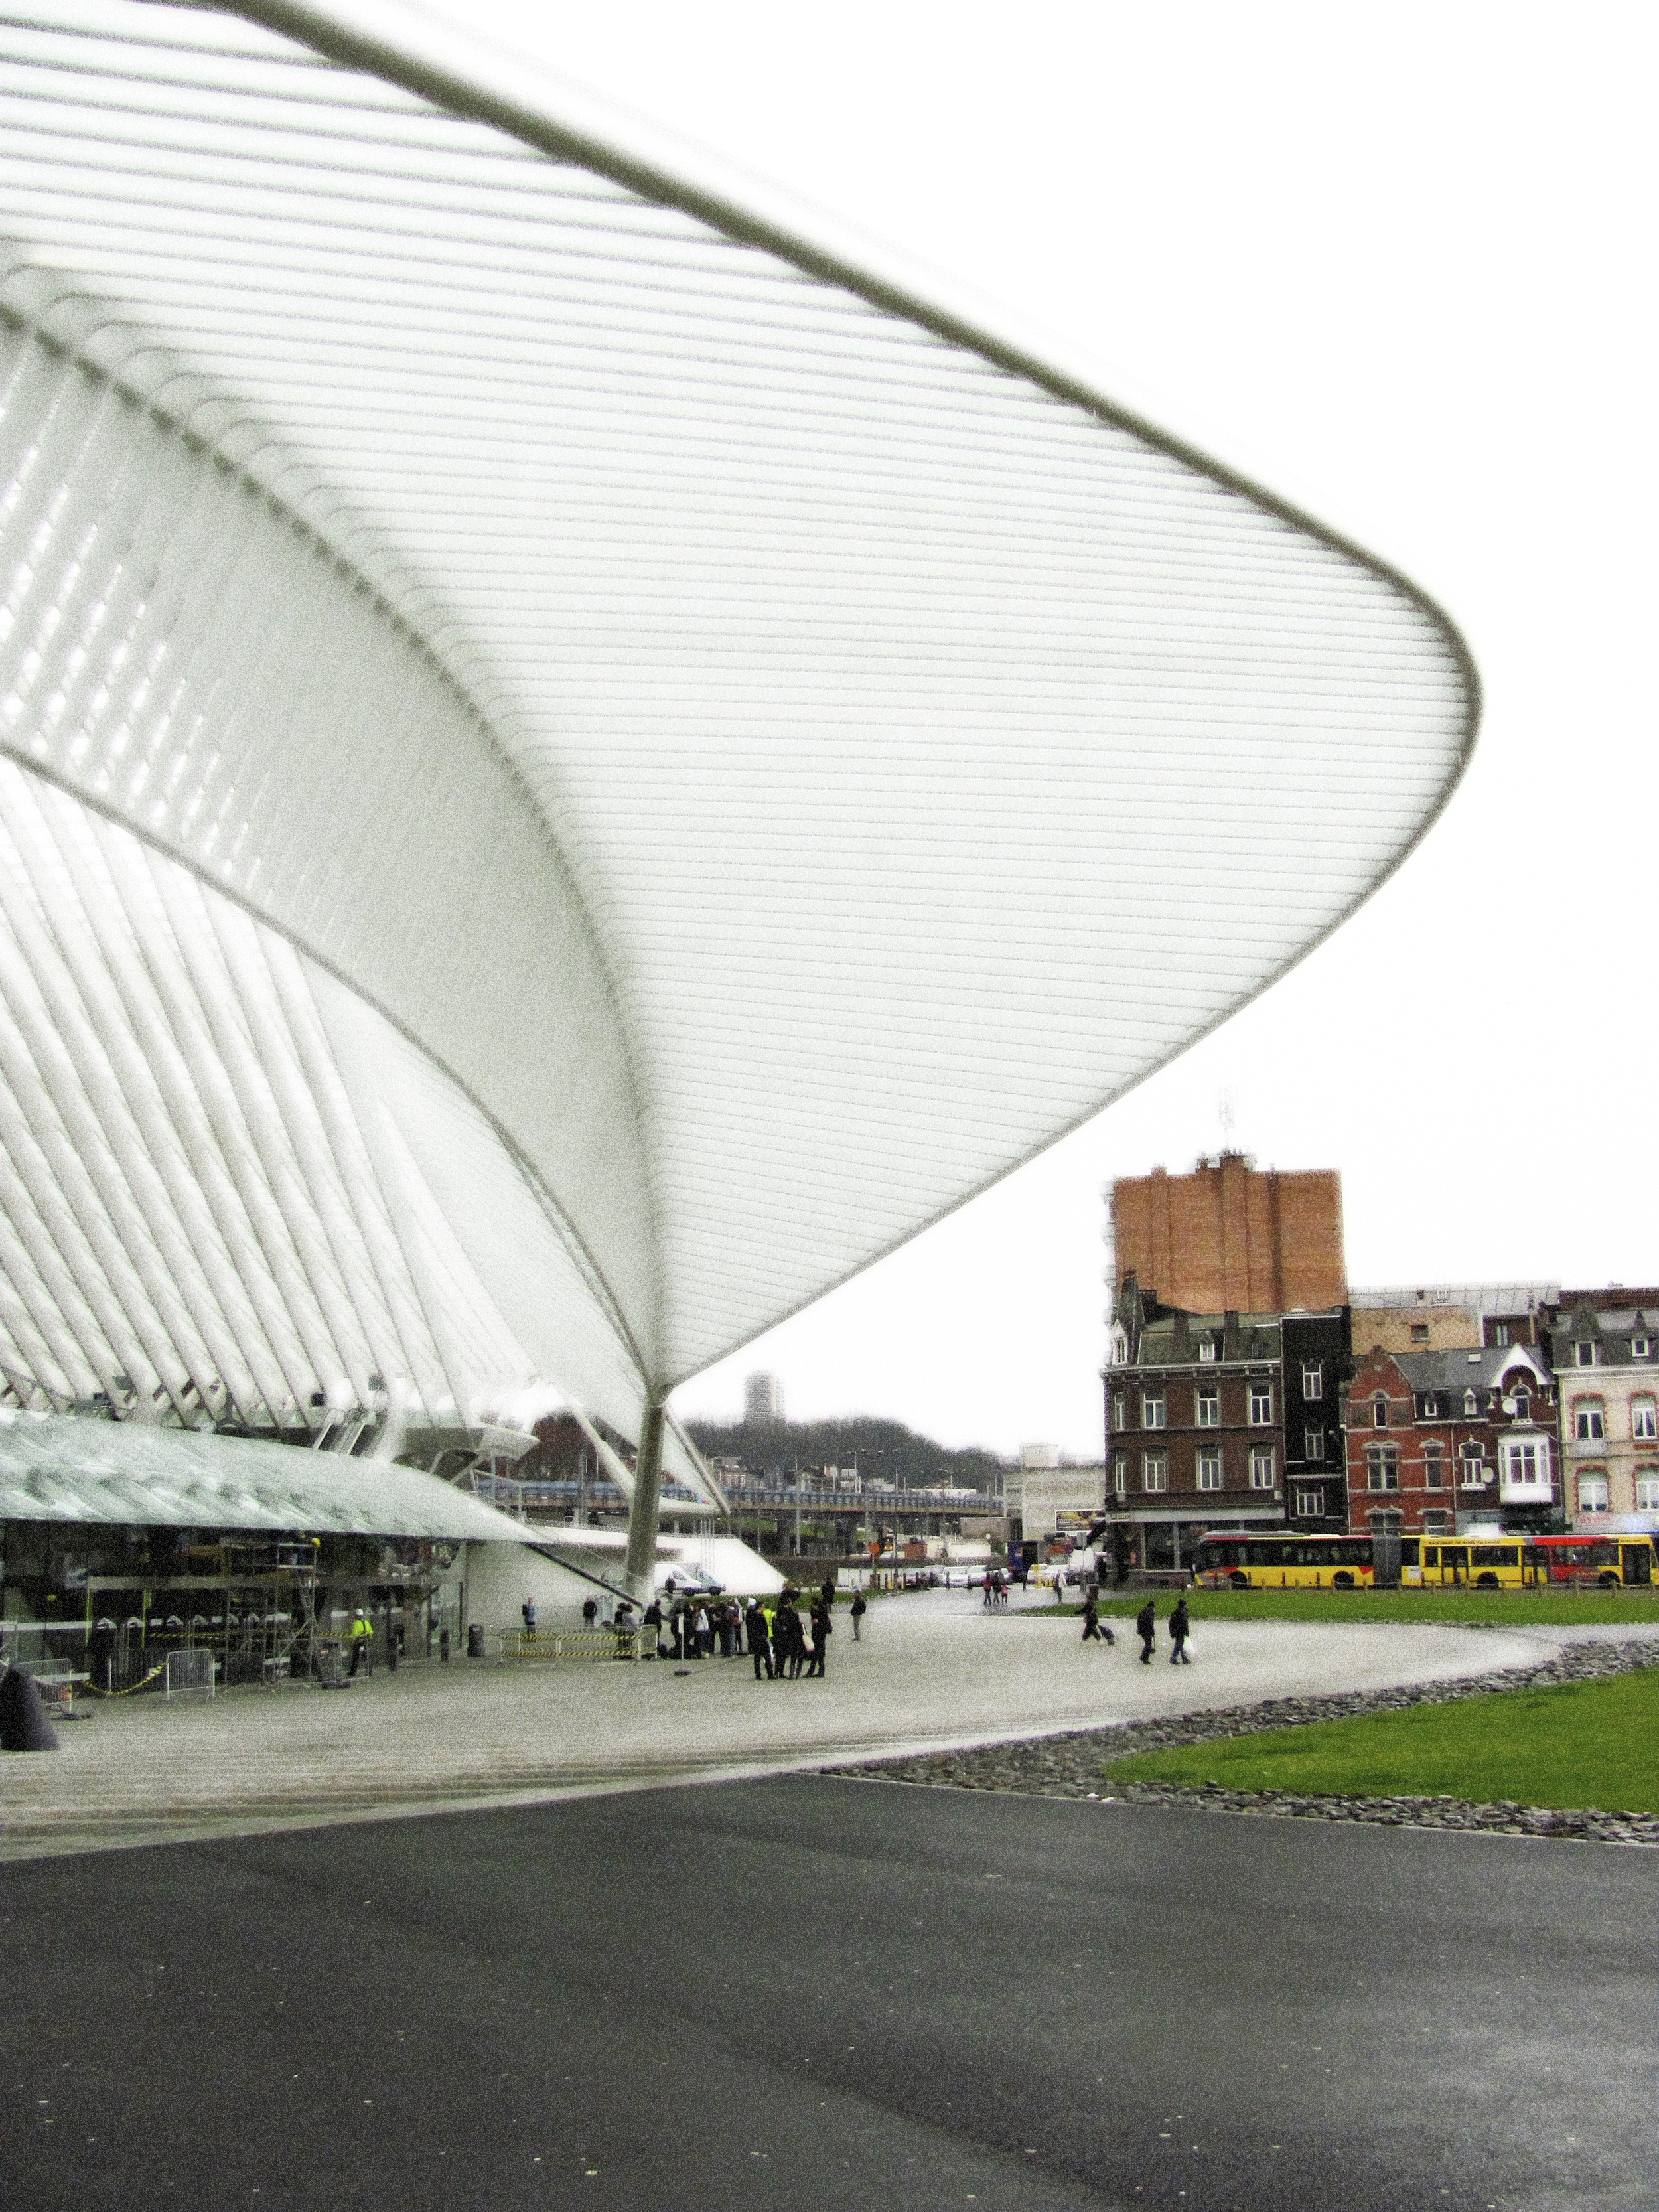 Plaza Entry Canopy, Liege, VHS 2010